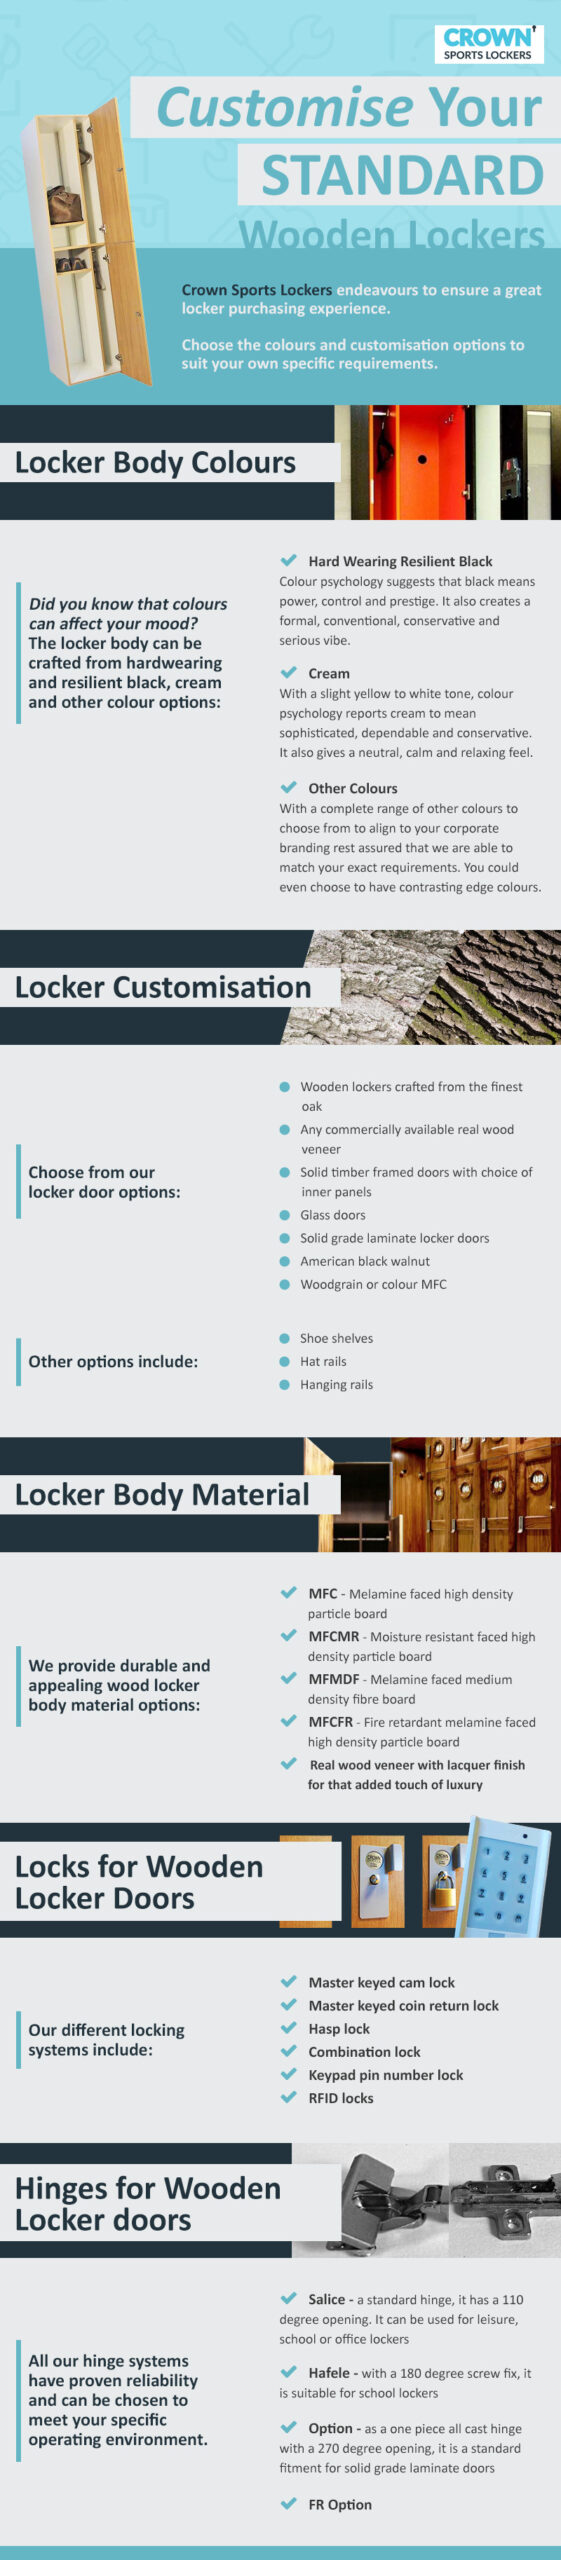 Customise Your Standard Wooden Lockers